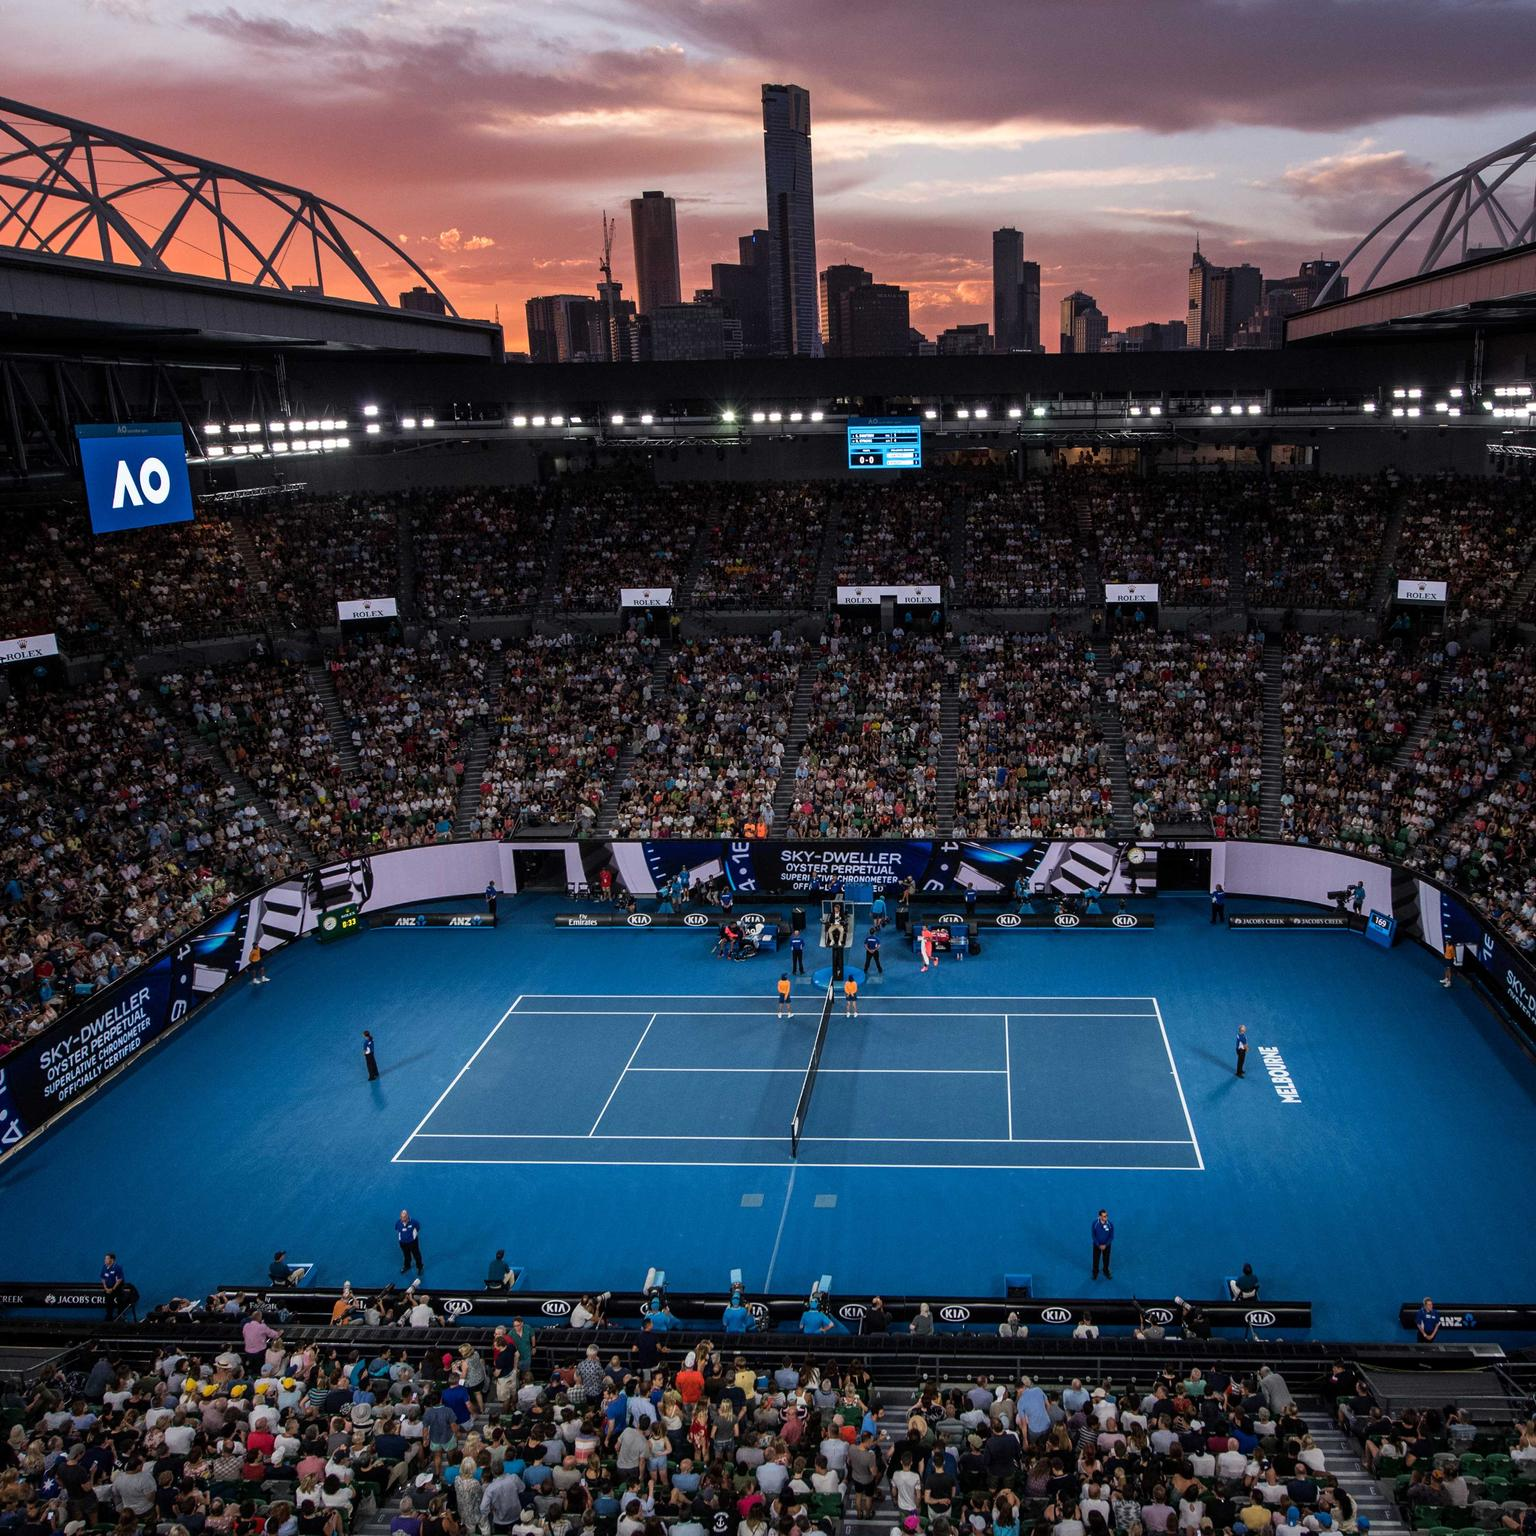 Aerial view of the Australian Open centre court 2018